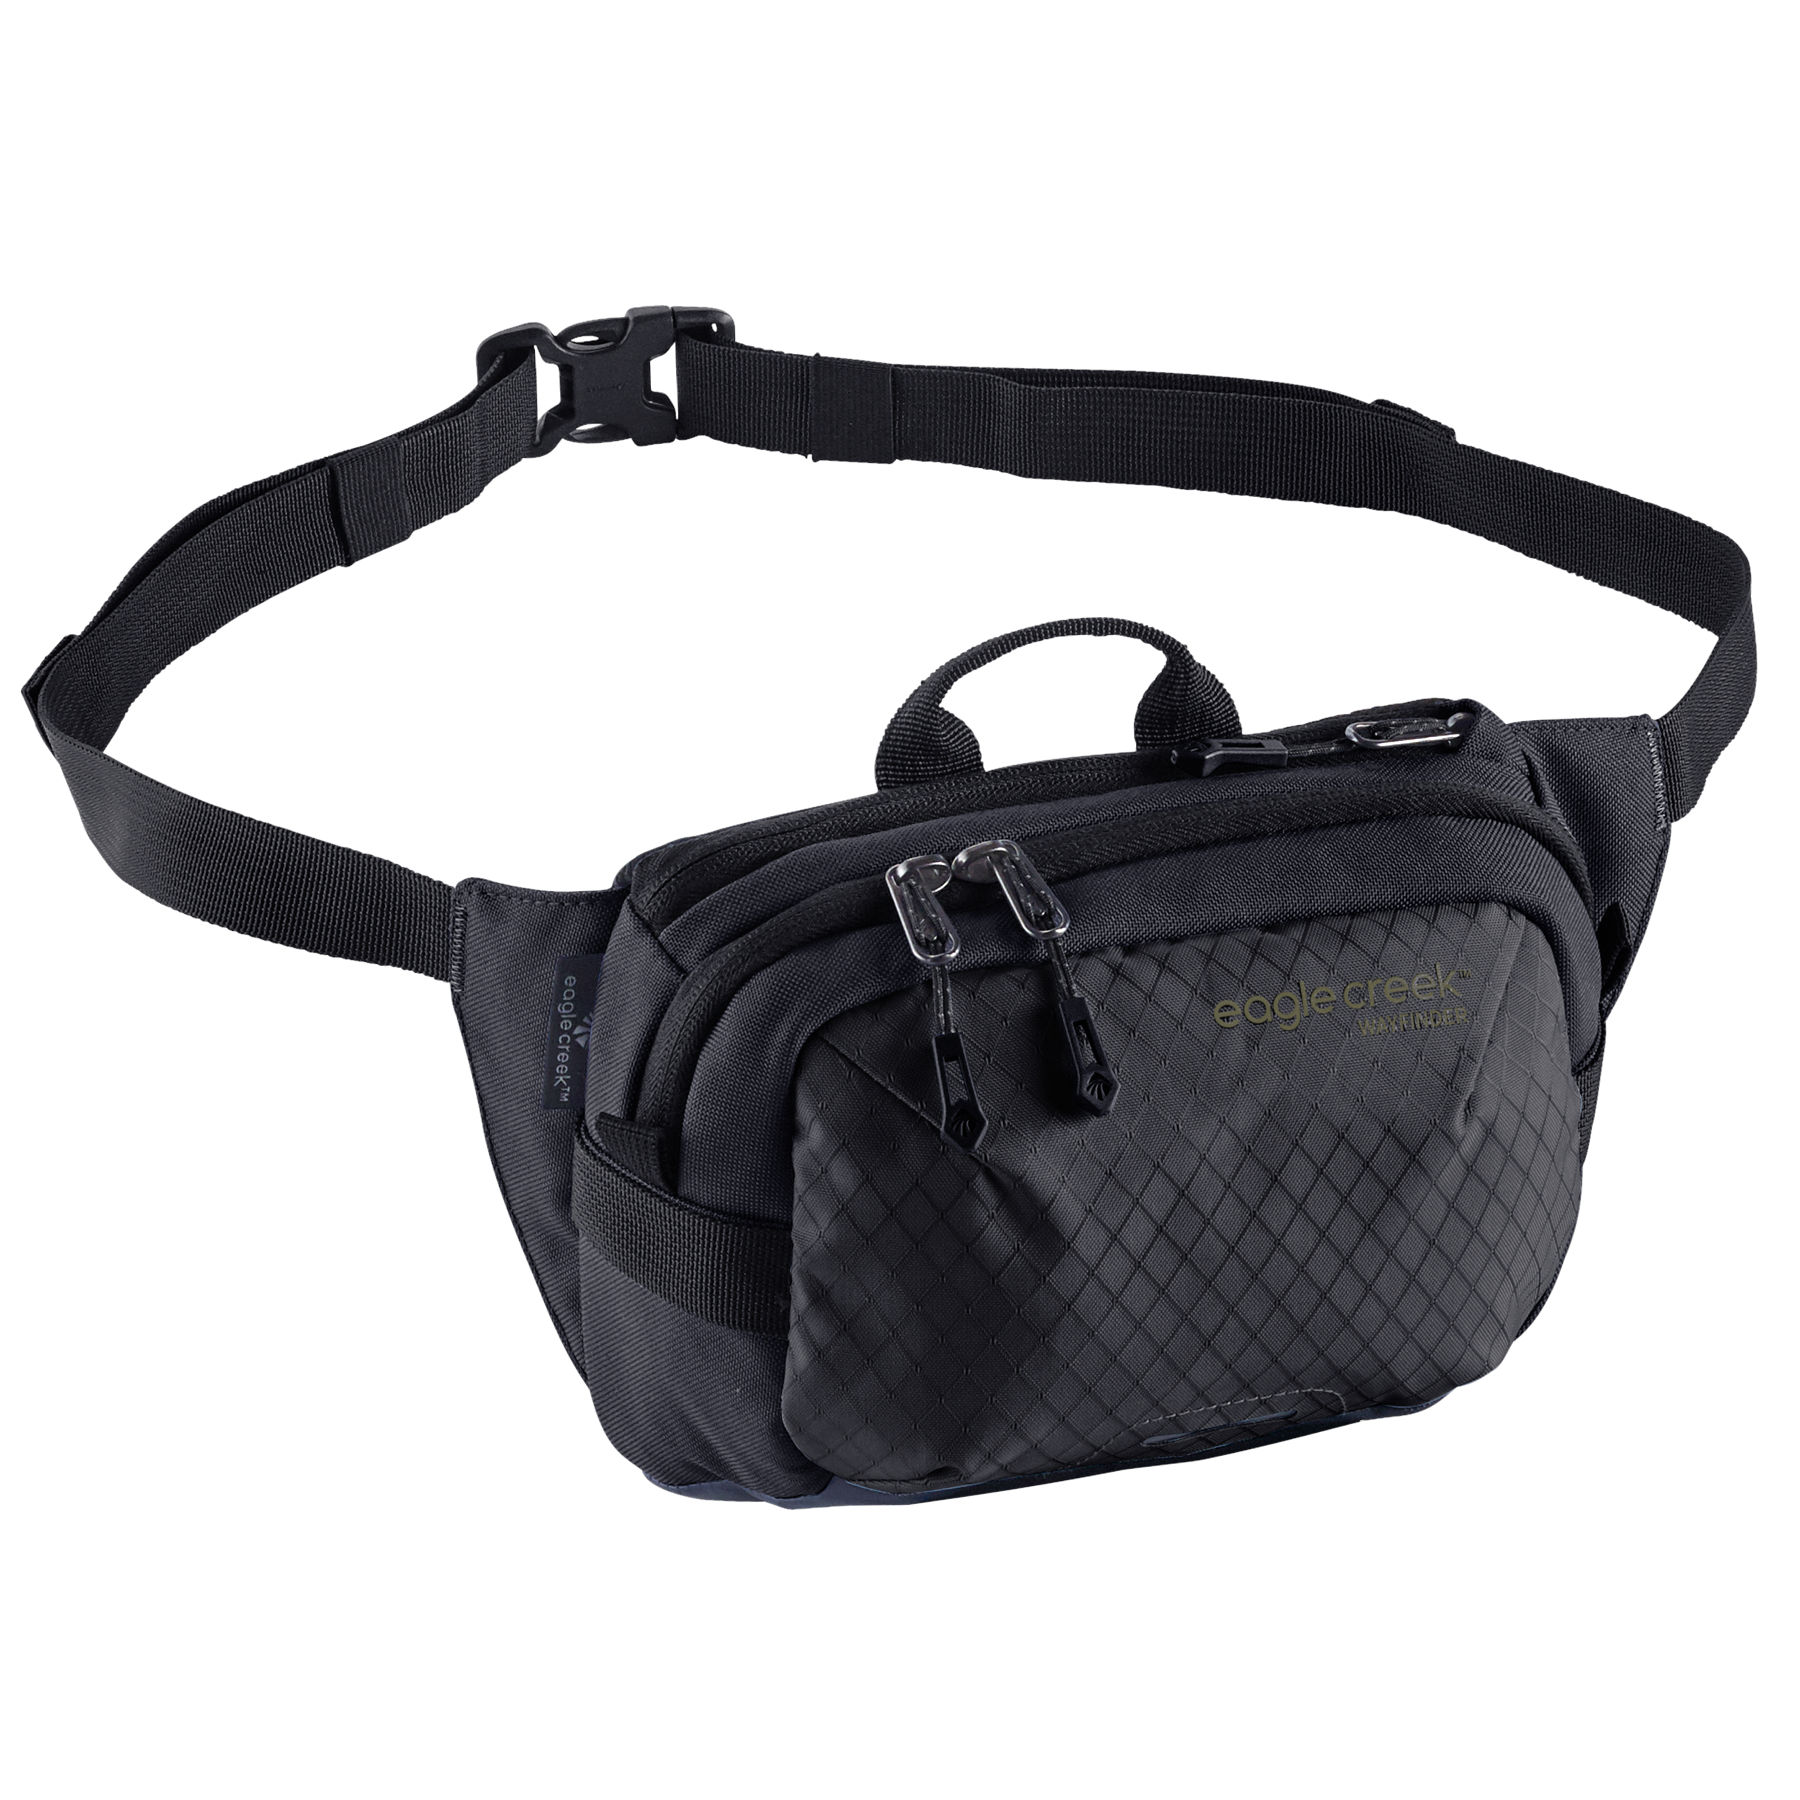 Wayfinder Waist Pack Small